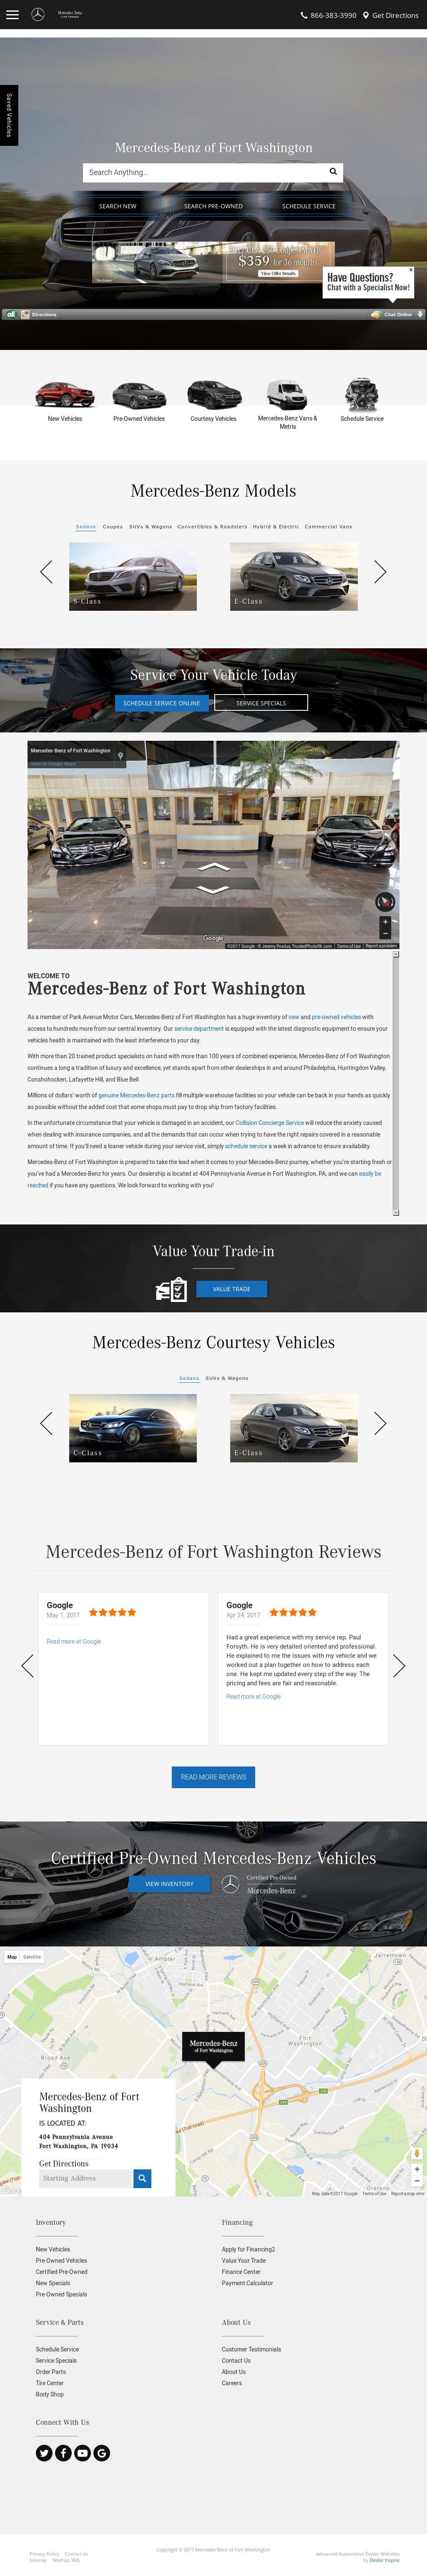 Captivating Mercedes Benz Fort Washington Website History